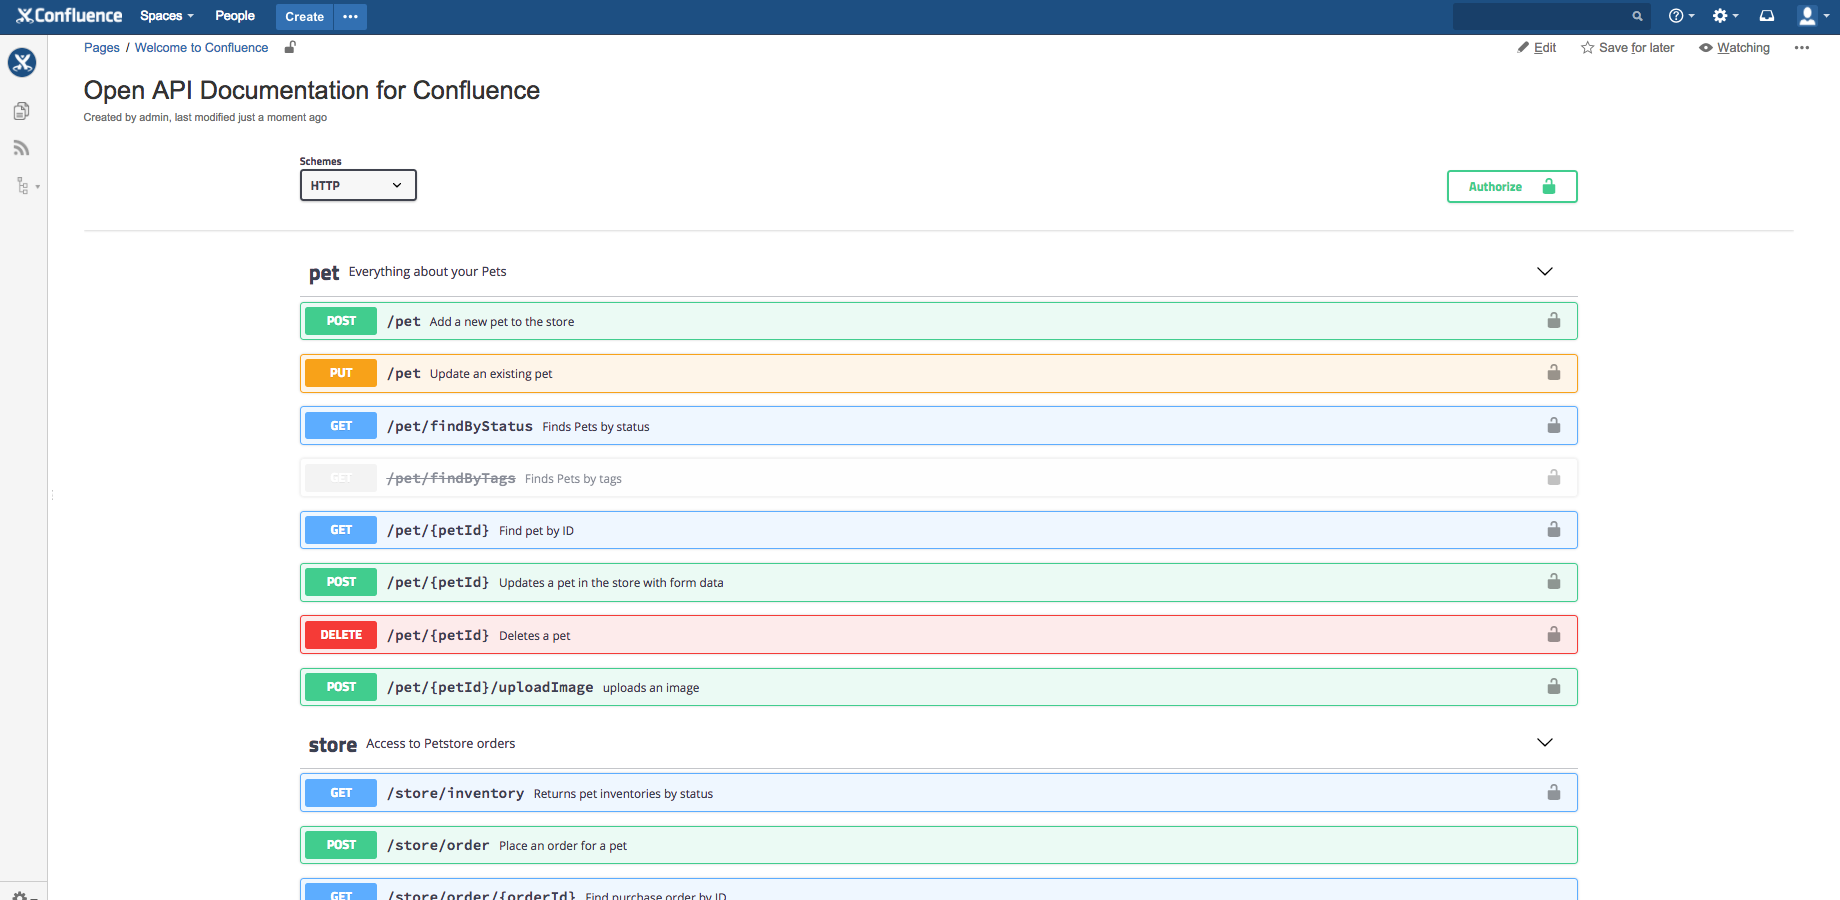 Open API Documentation for Confluence - Blended Perspectives